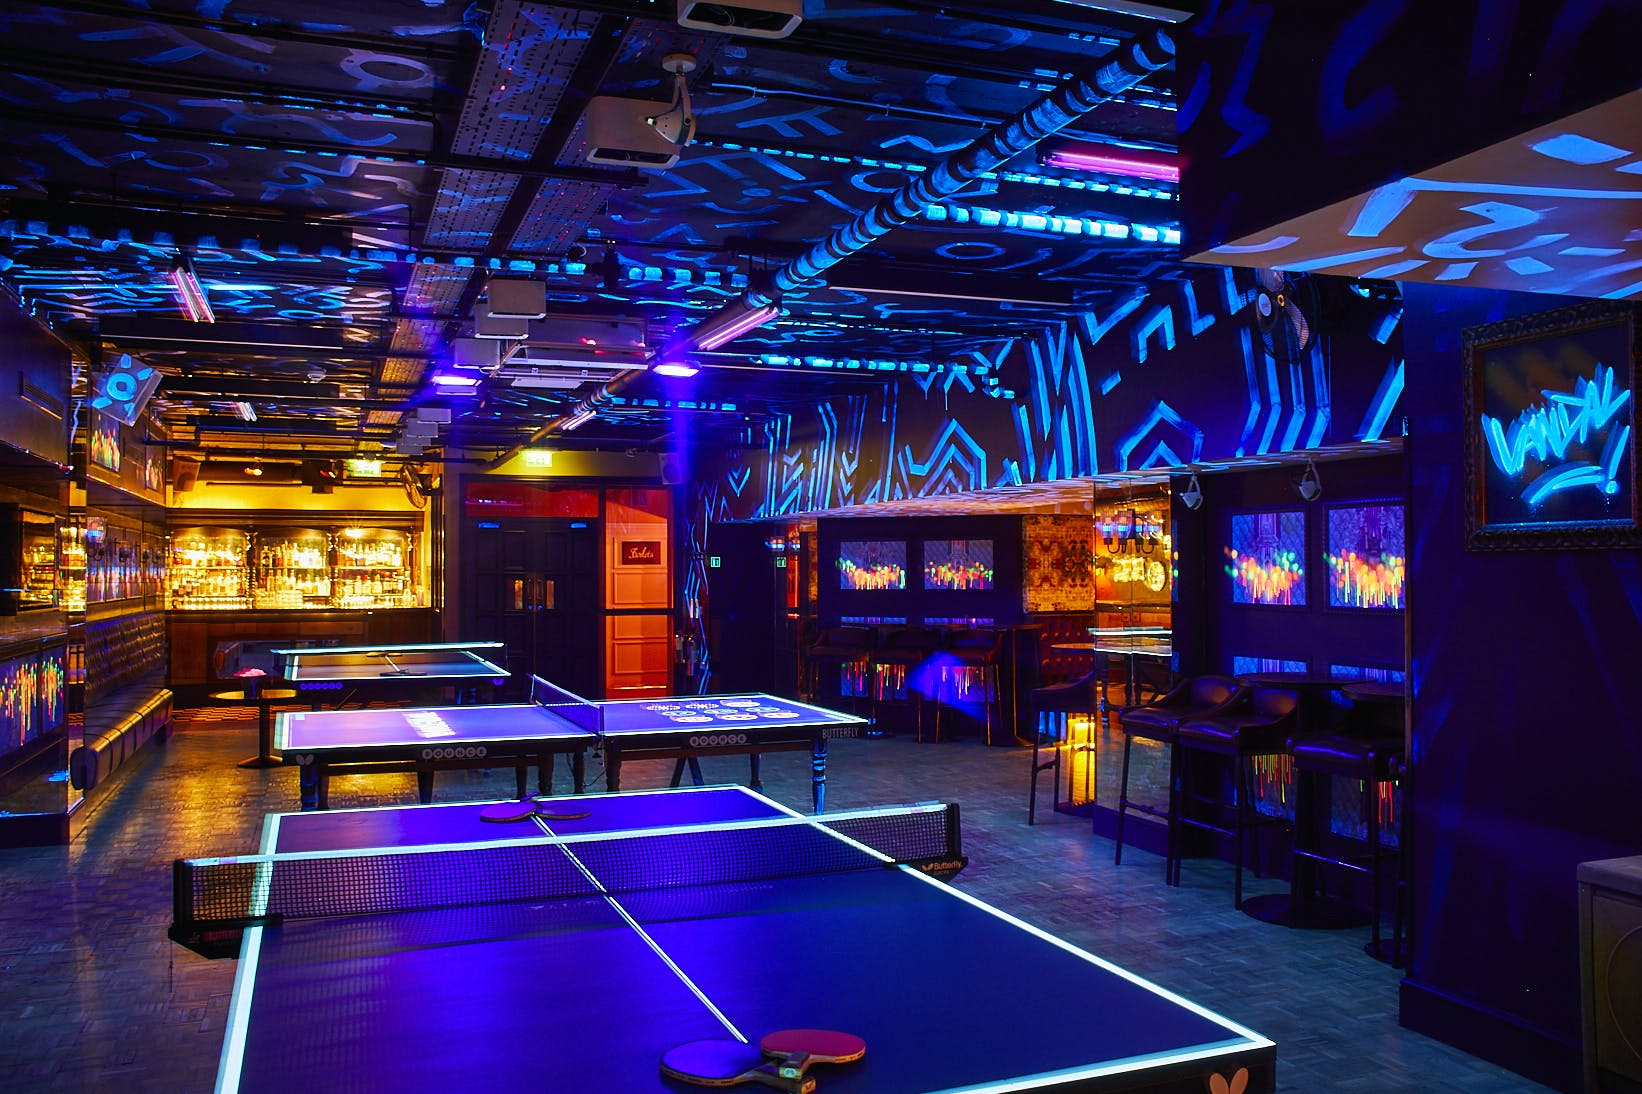 Bounce tables and bar